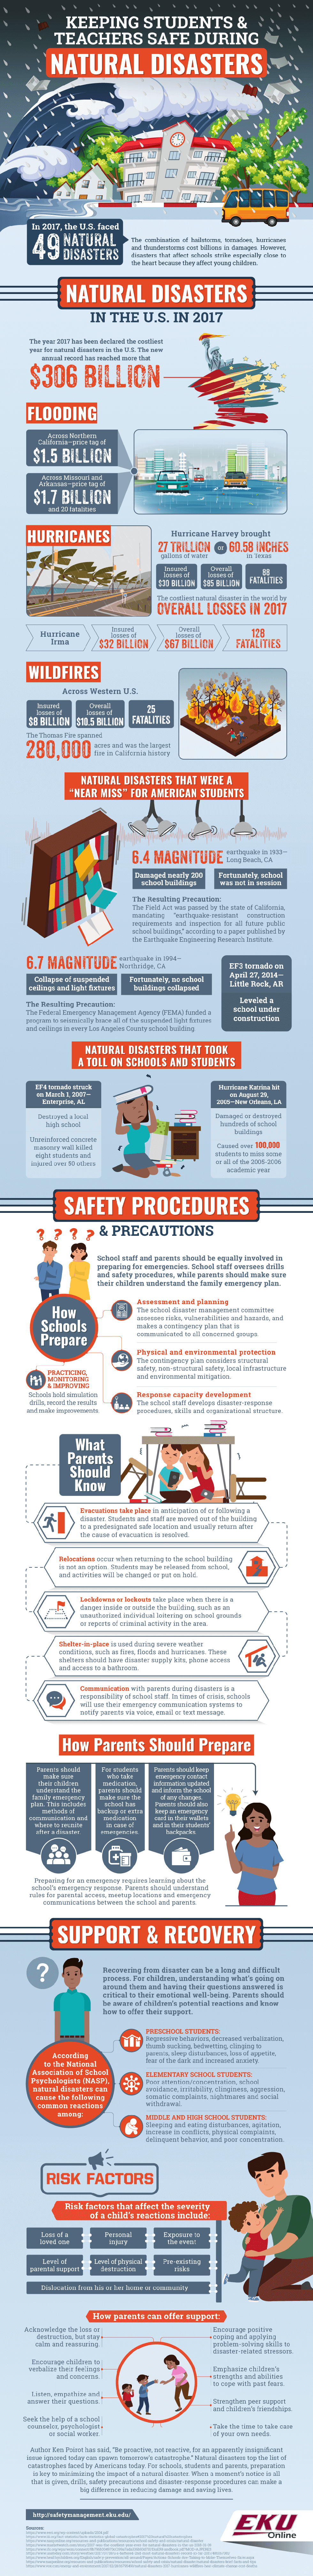 How proactive disaster prep can help kids stay as safe as possible.